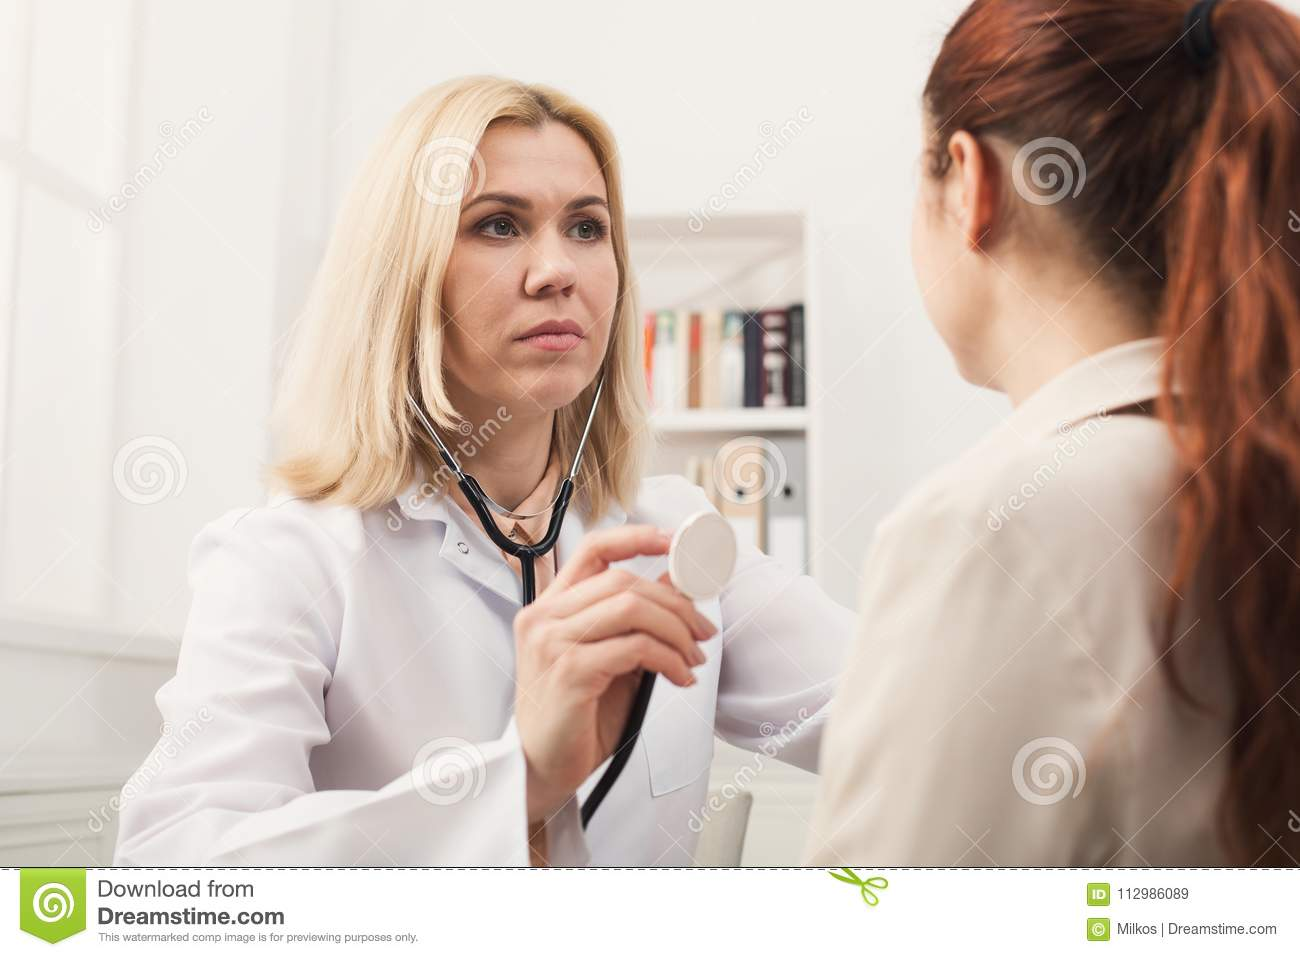 Doc with stethoscope checking patient heart beat